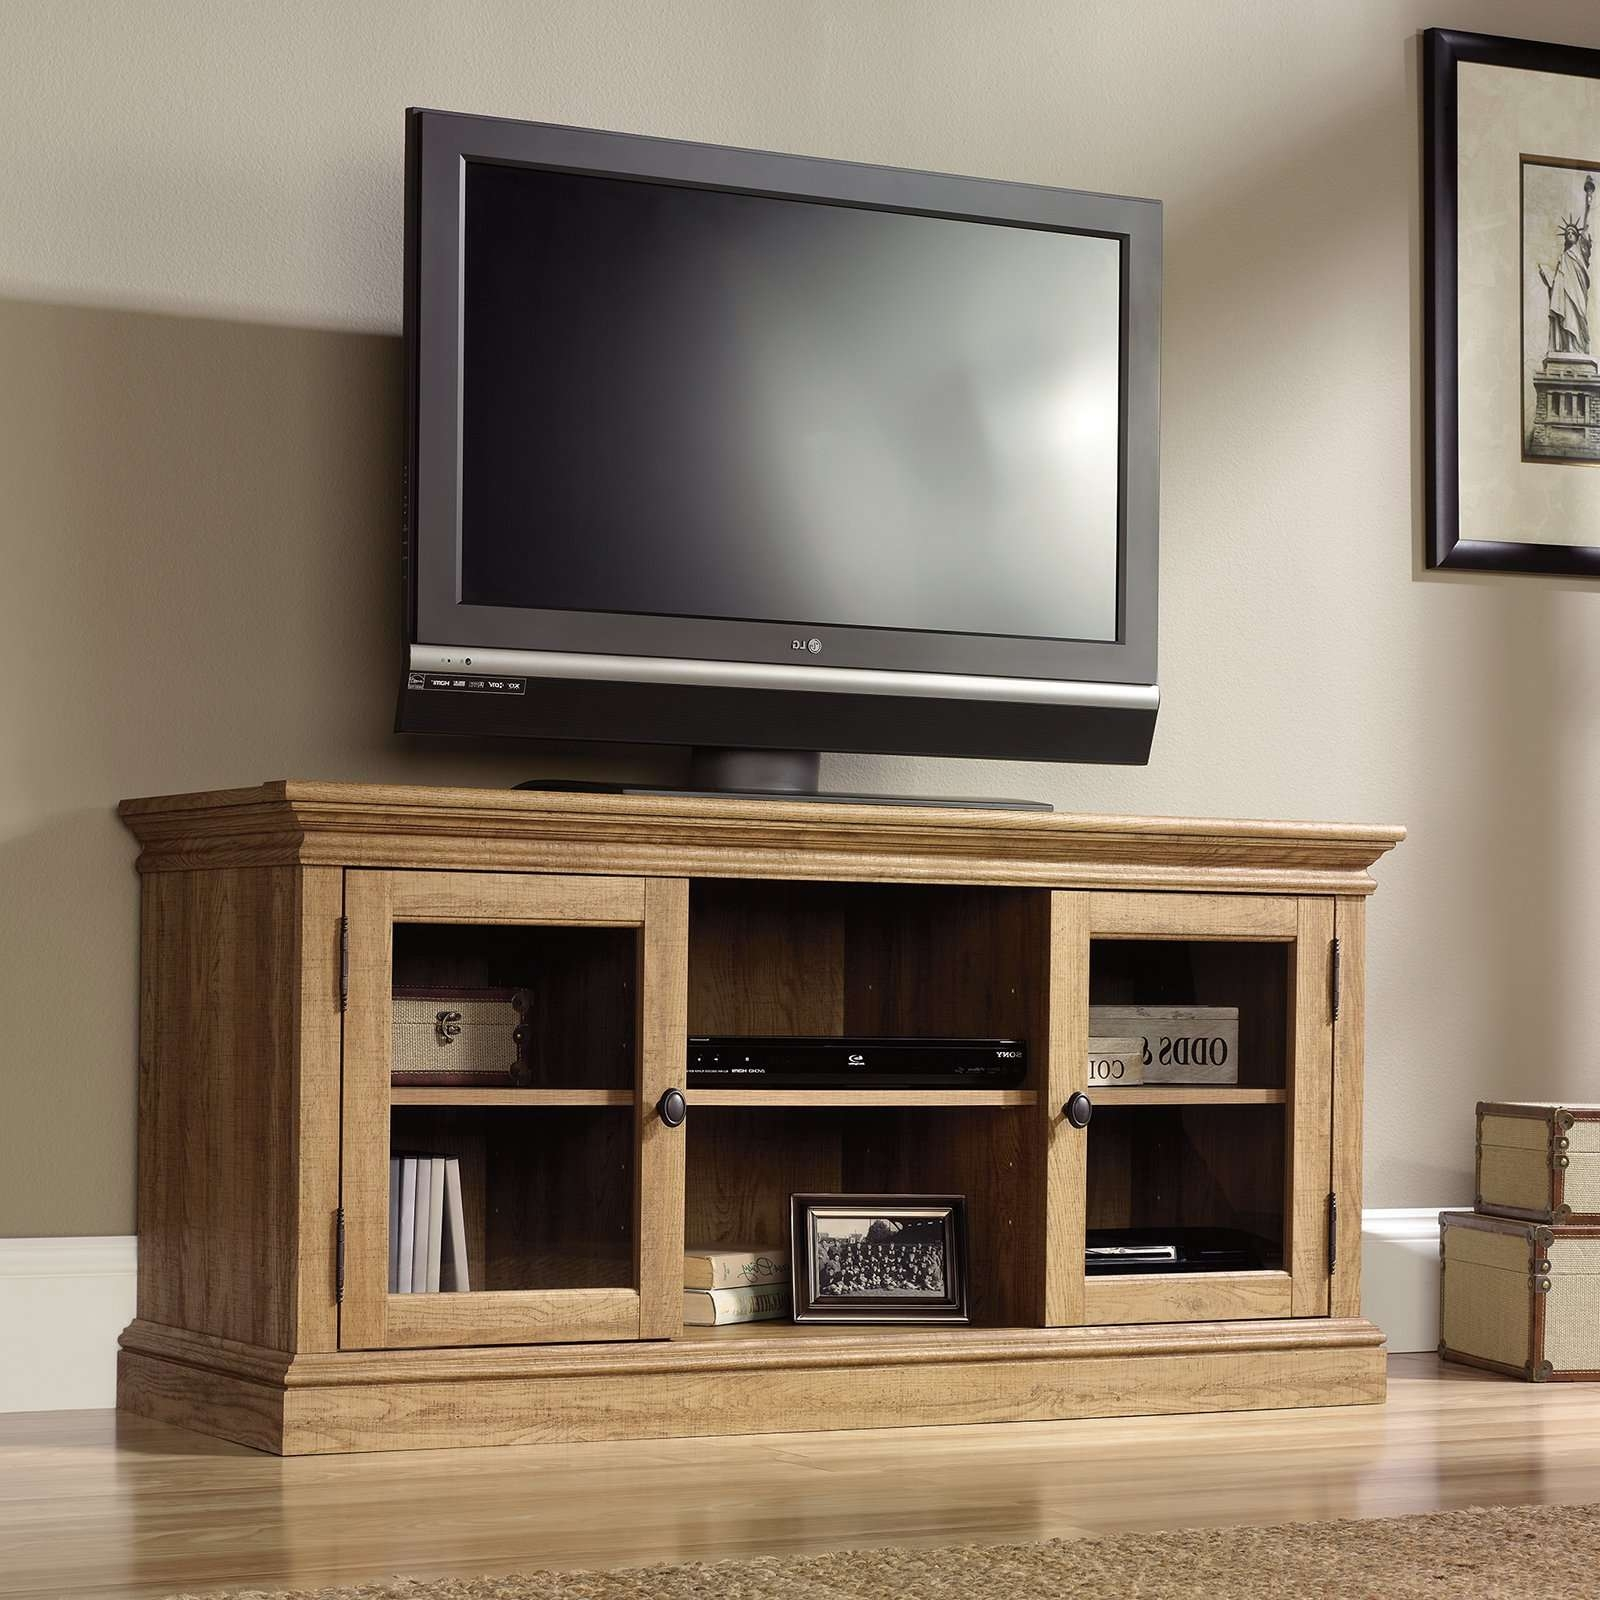 Oak Tv Consoles For Flat Screens : Innovative Designs Oak Tv Throughout Oak Tv Stands For Flat Screen (View 13 of 15)